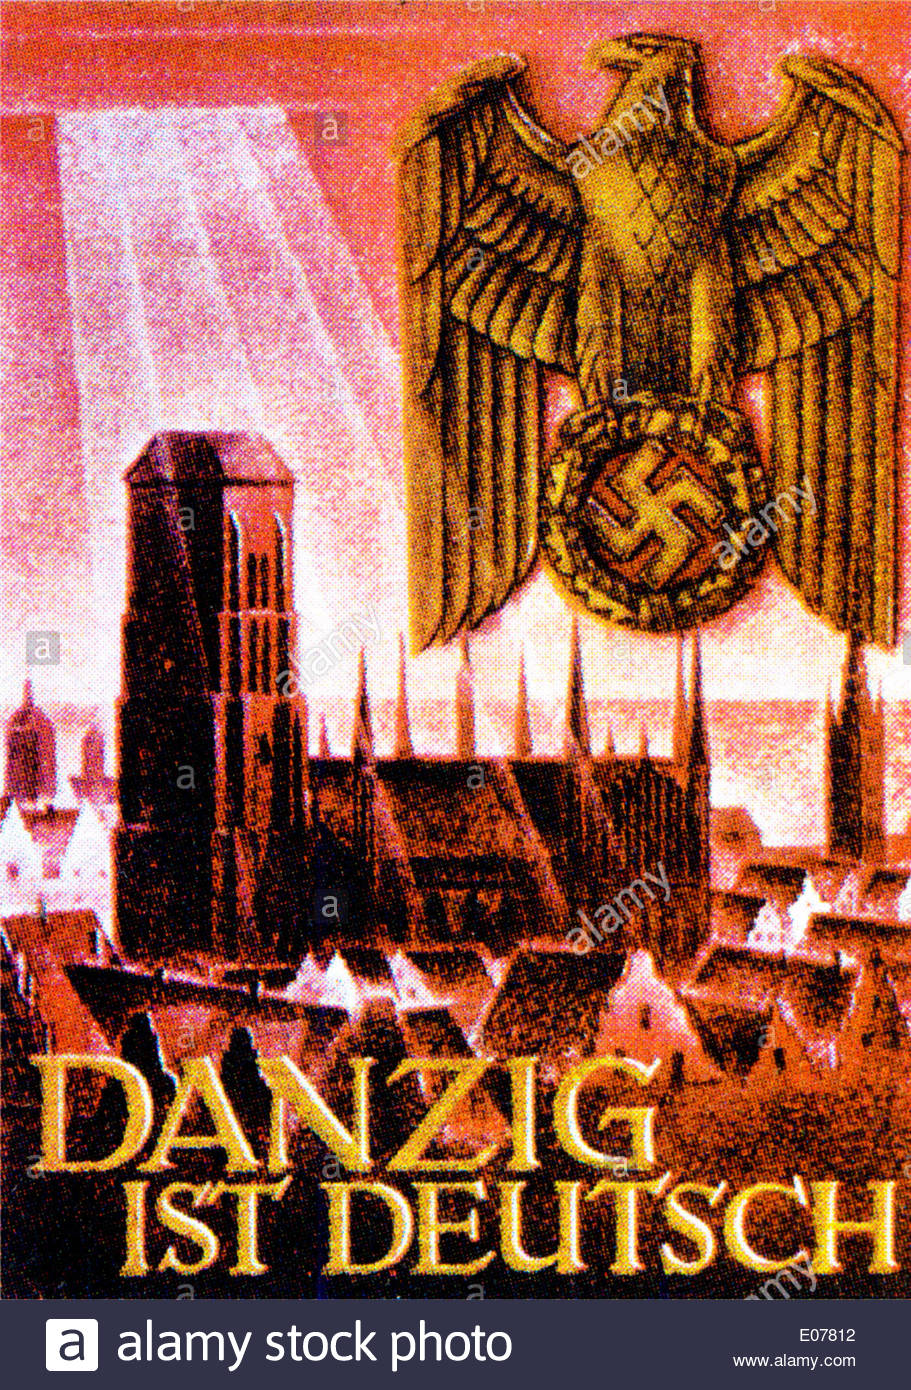 'Danzig is ours' German Wartime Poster - Stock Image